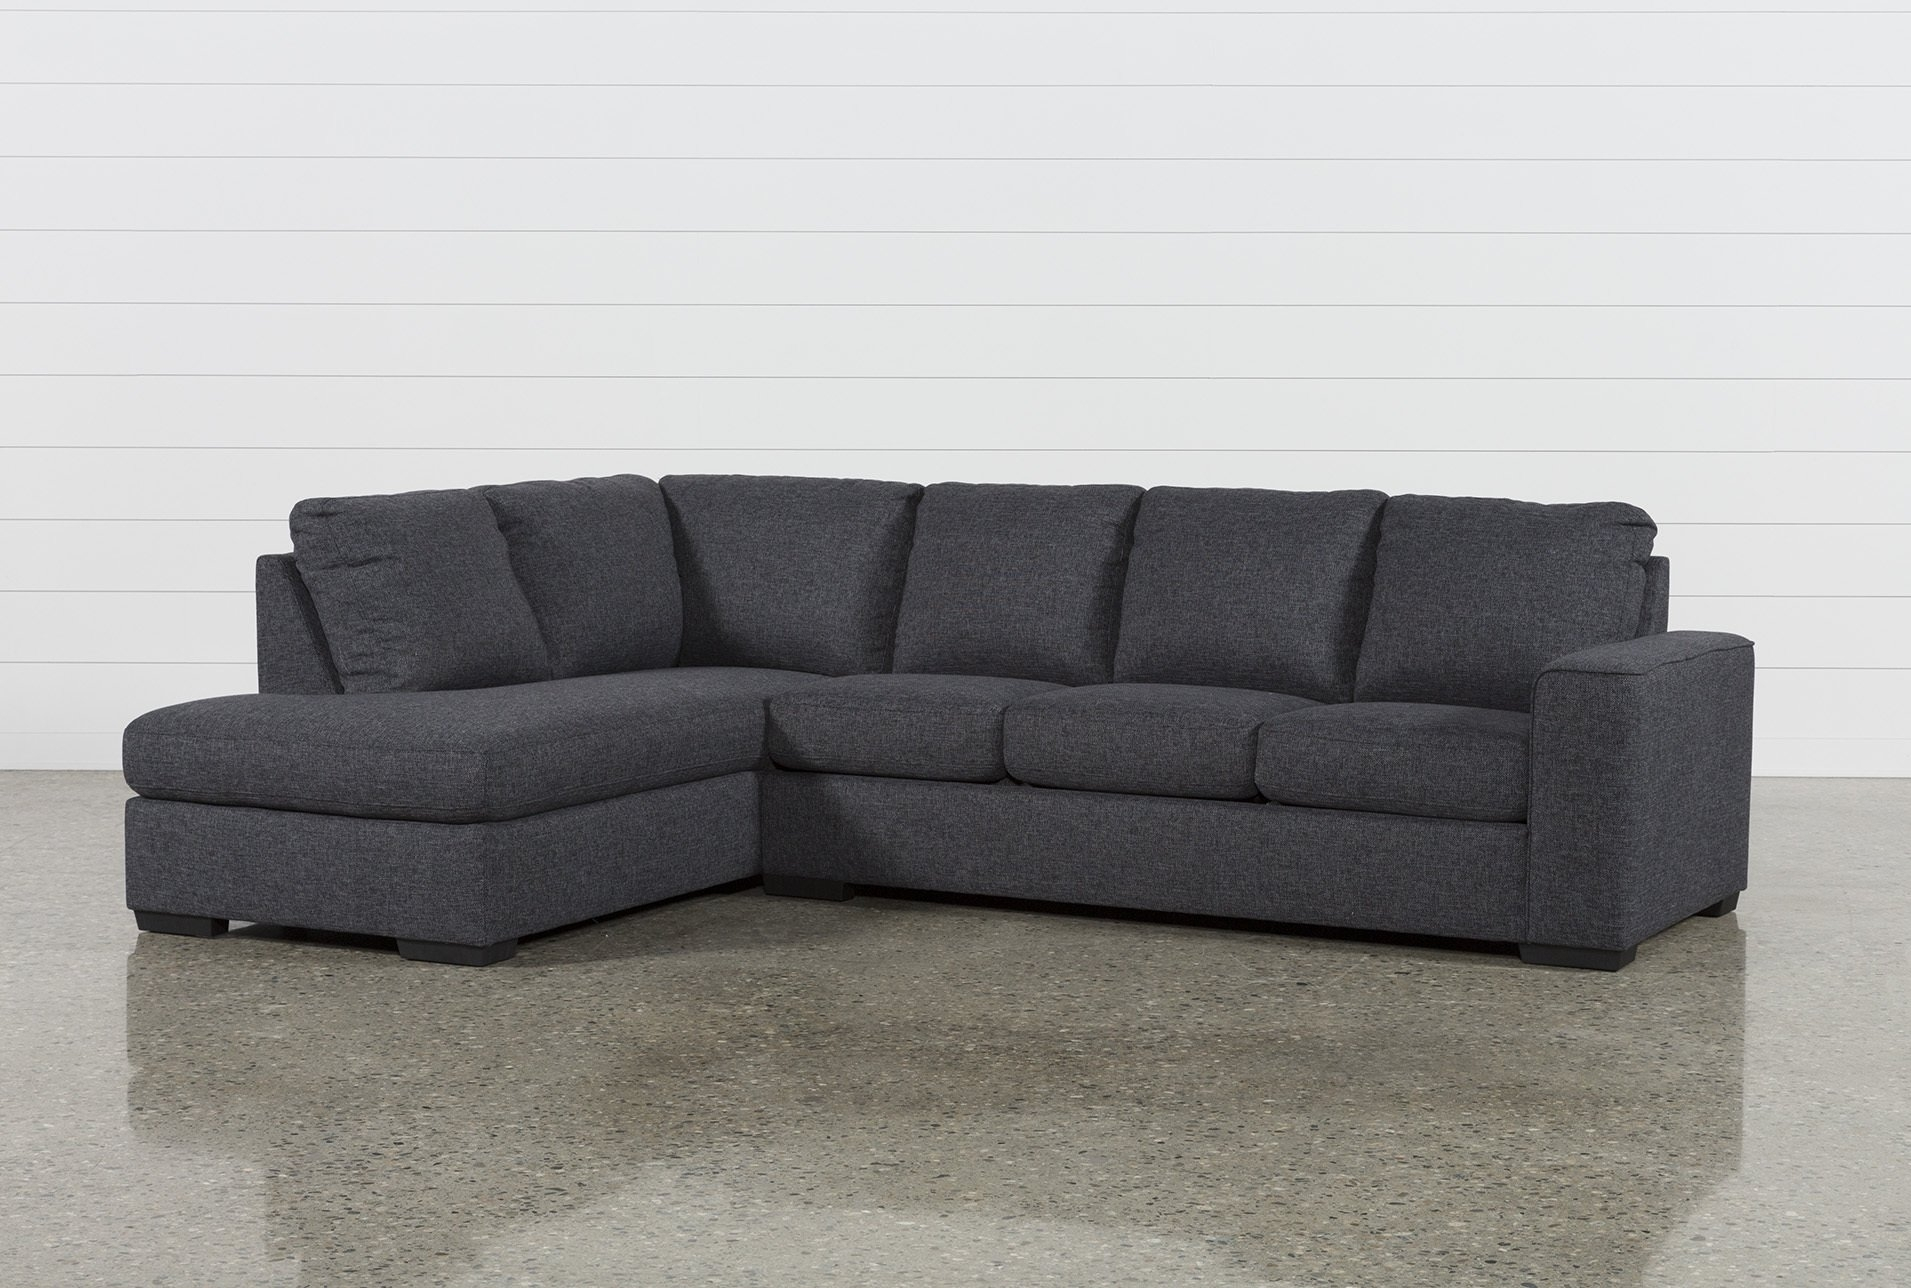 Lucy Dark Grey 2 Piece Sectional W/laf Chaise | Dark Grey And Products With Aspen 2 Piece Sleeper Sectionals With Laf Chaise (Image 19 of 25)